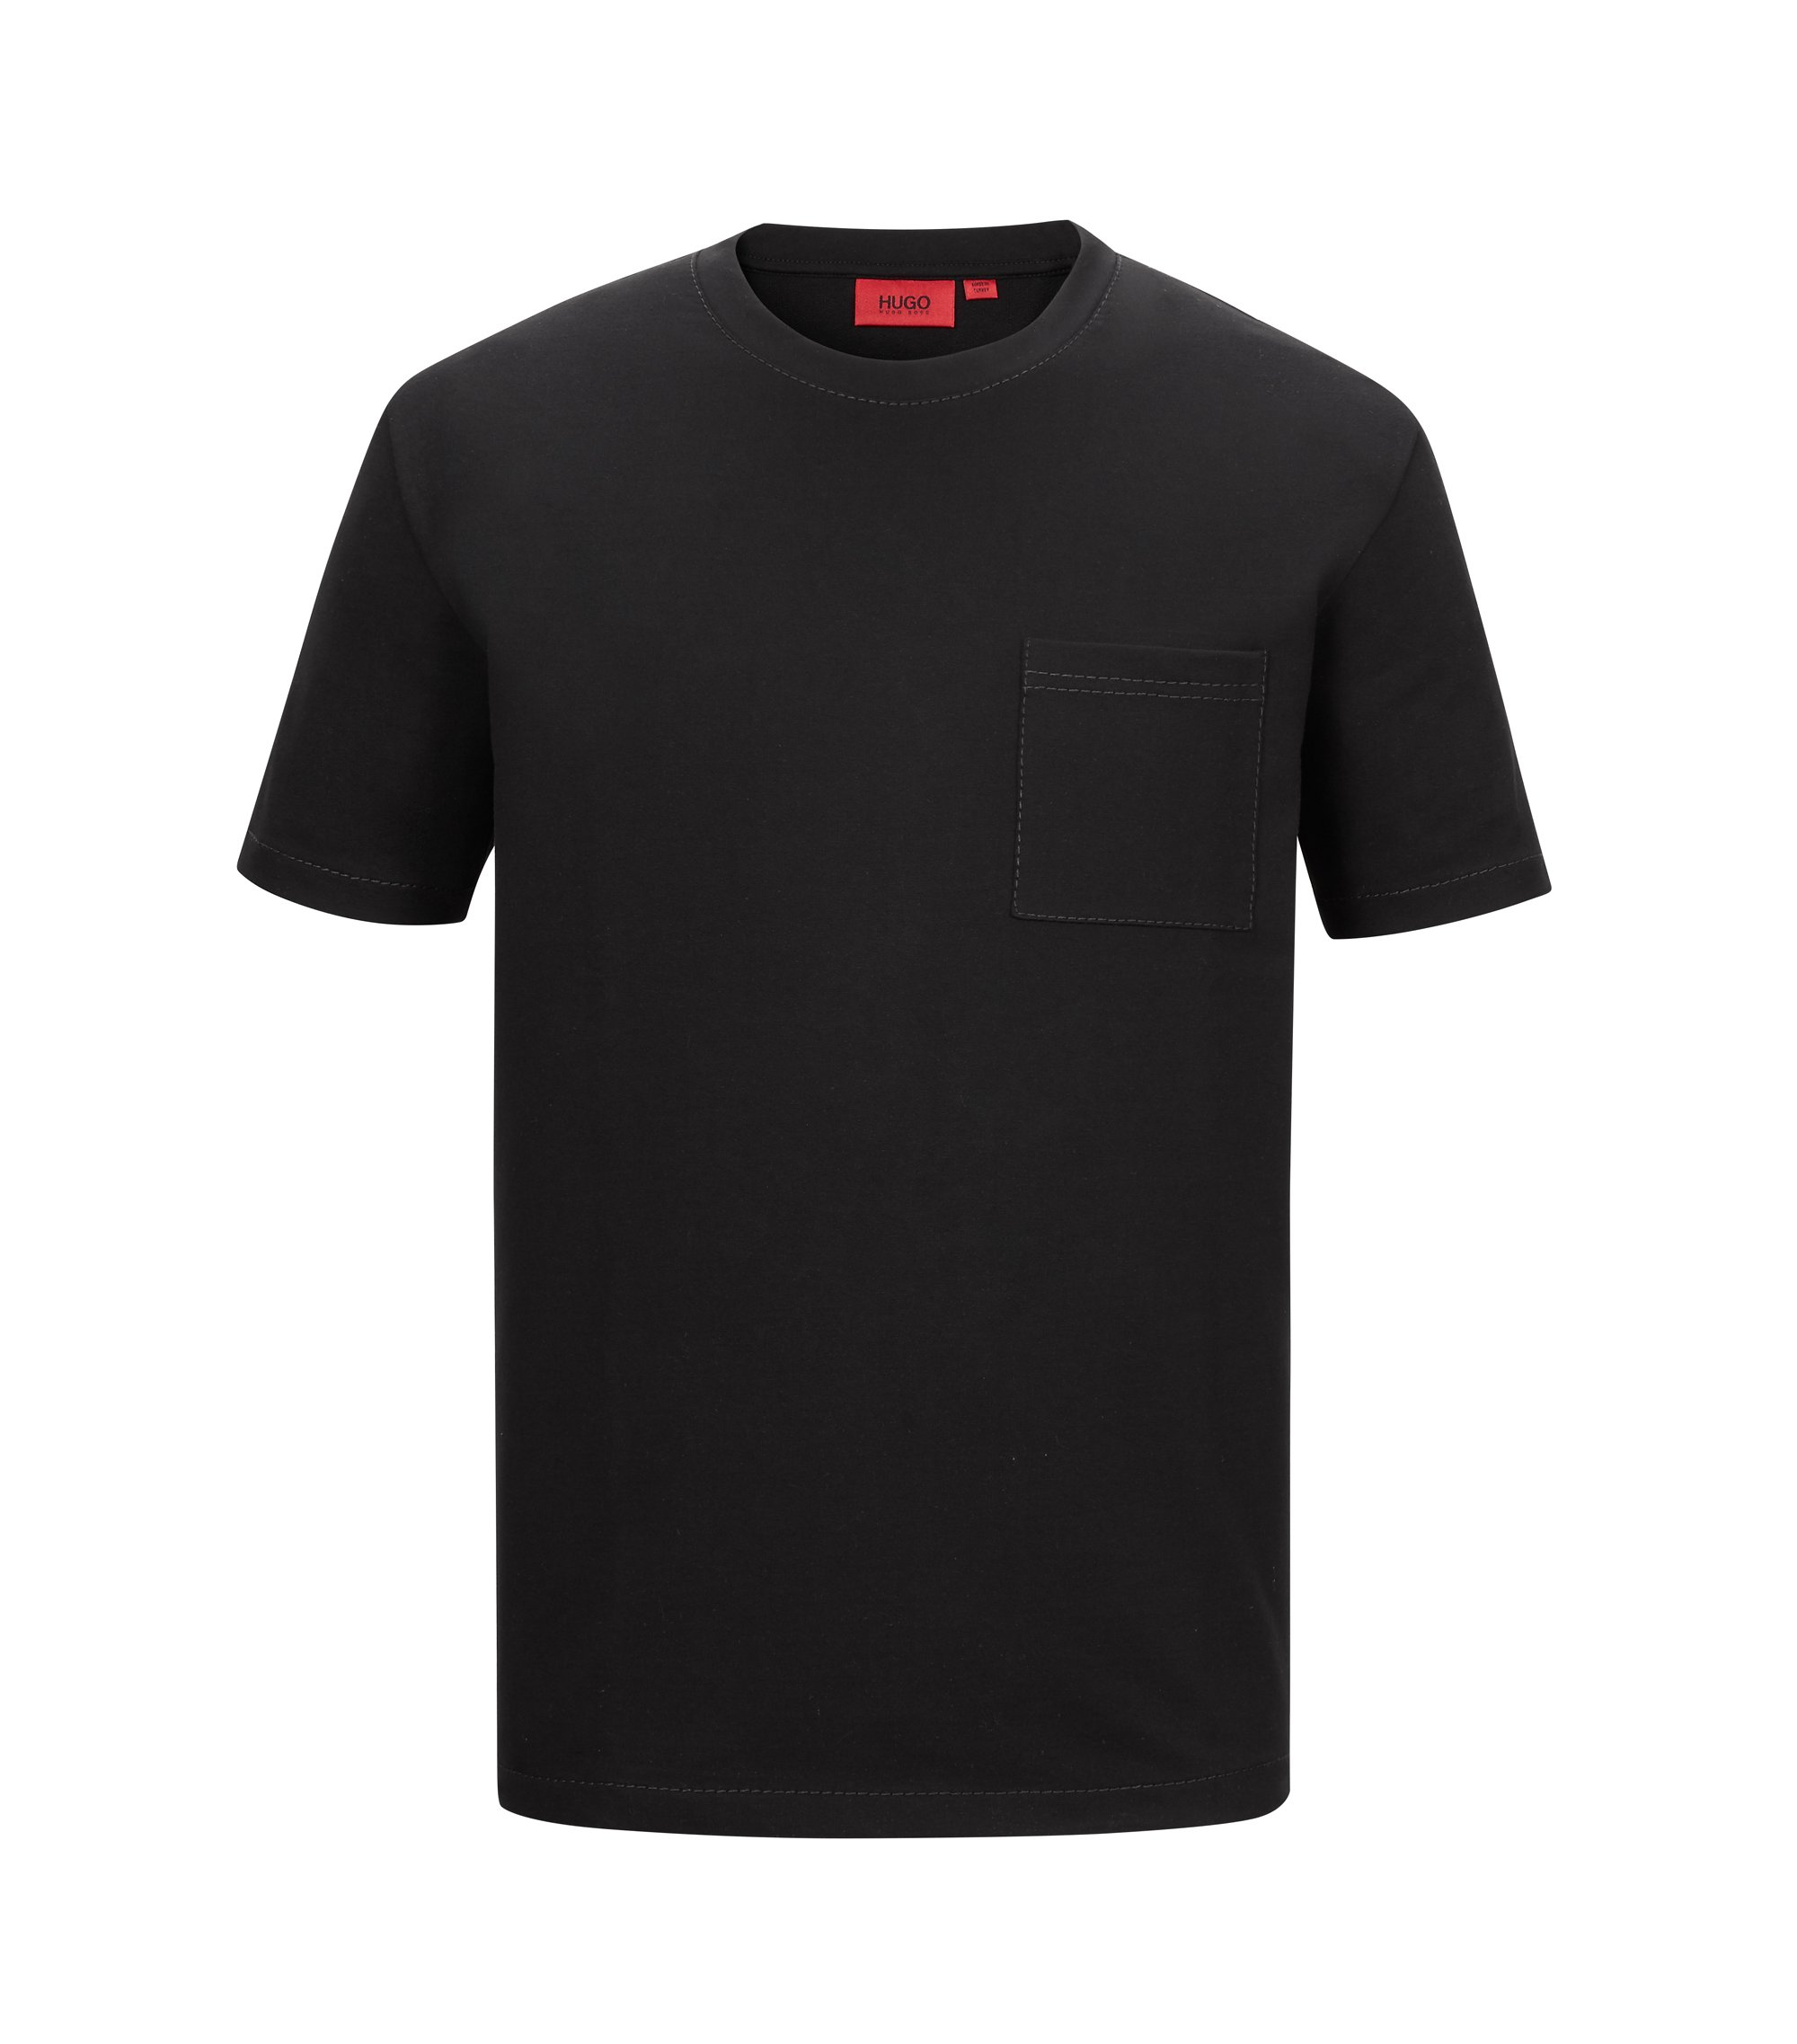 Stretch French Terry Pocket T-Shirt | Daccor, Black